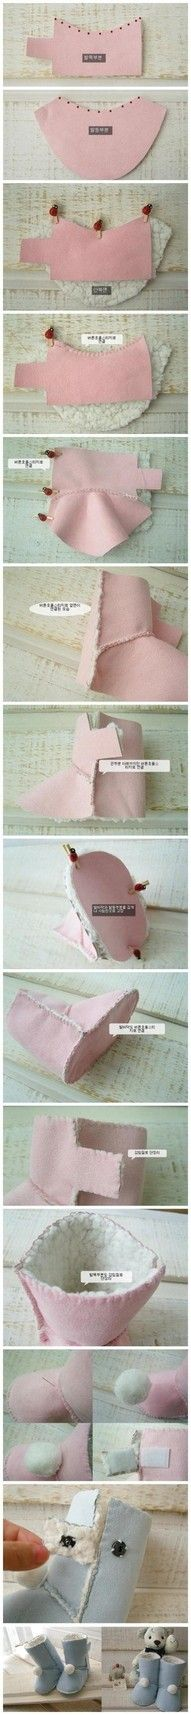 Make your own doll boots like UGGS--cute!